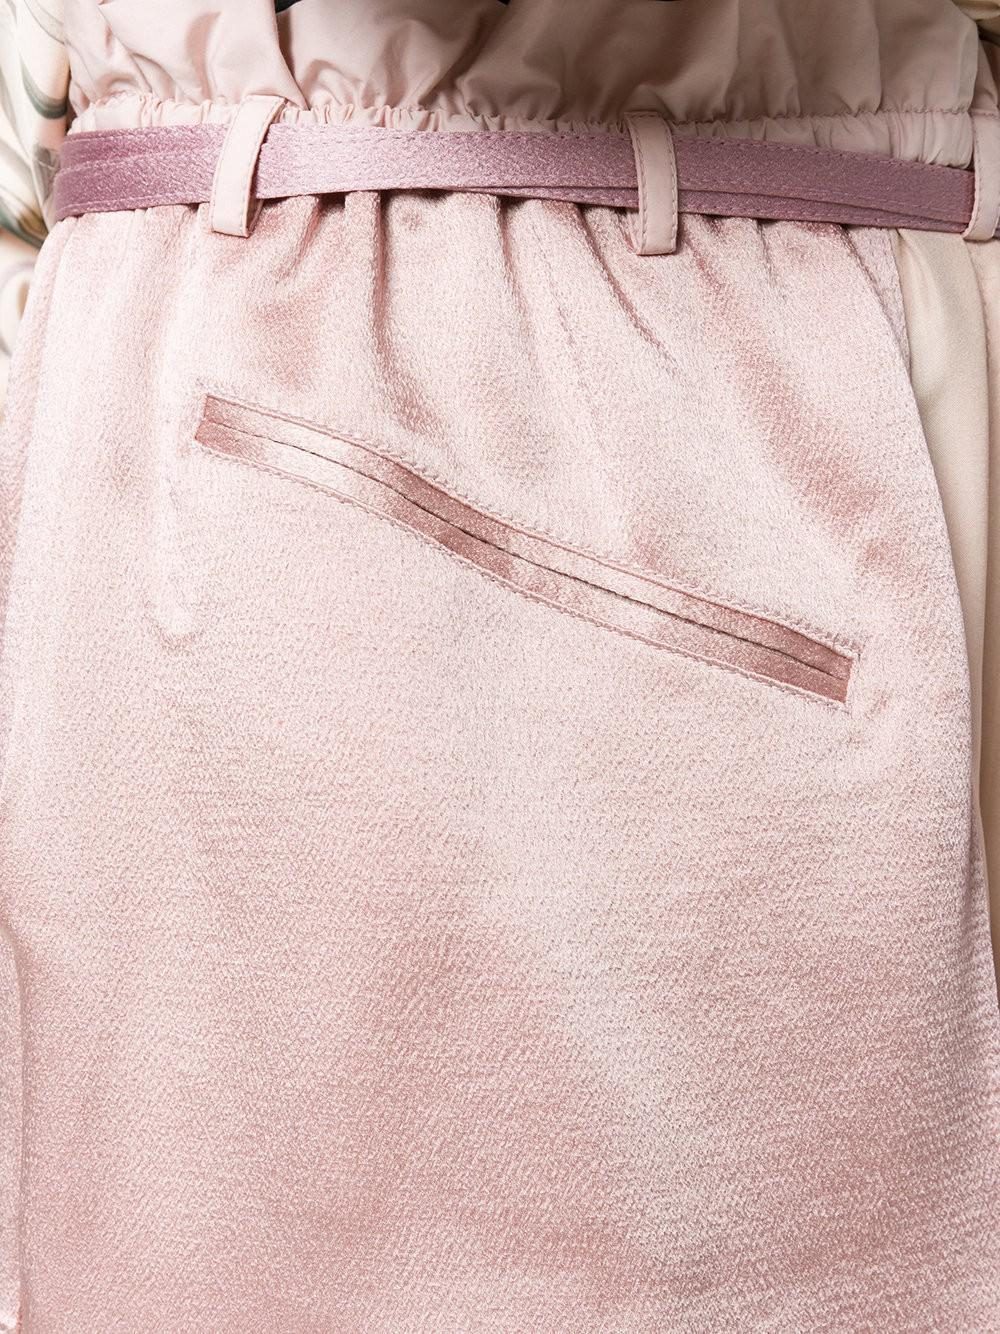 Outlet Wide Range Of Clearance Buy layered shorts - Pink & Purple Valentino Buy Cheap Fashion Style 6uzrcX4FjO